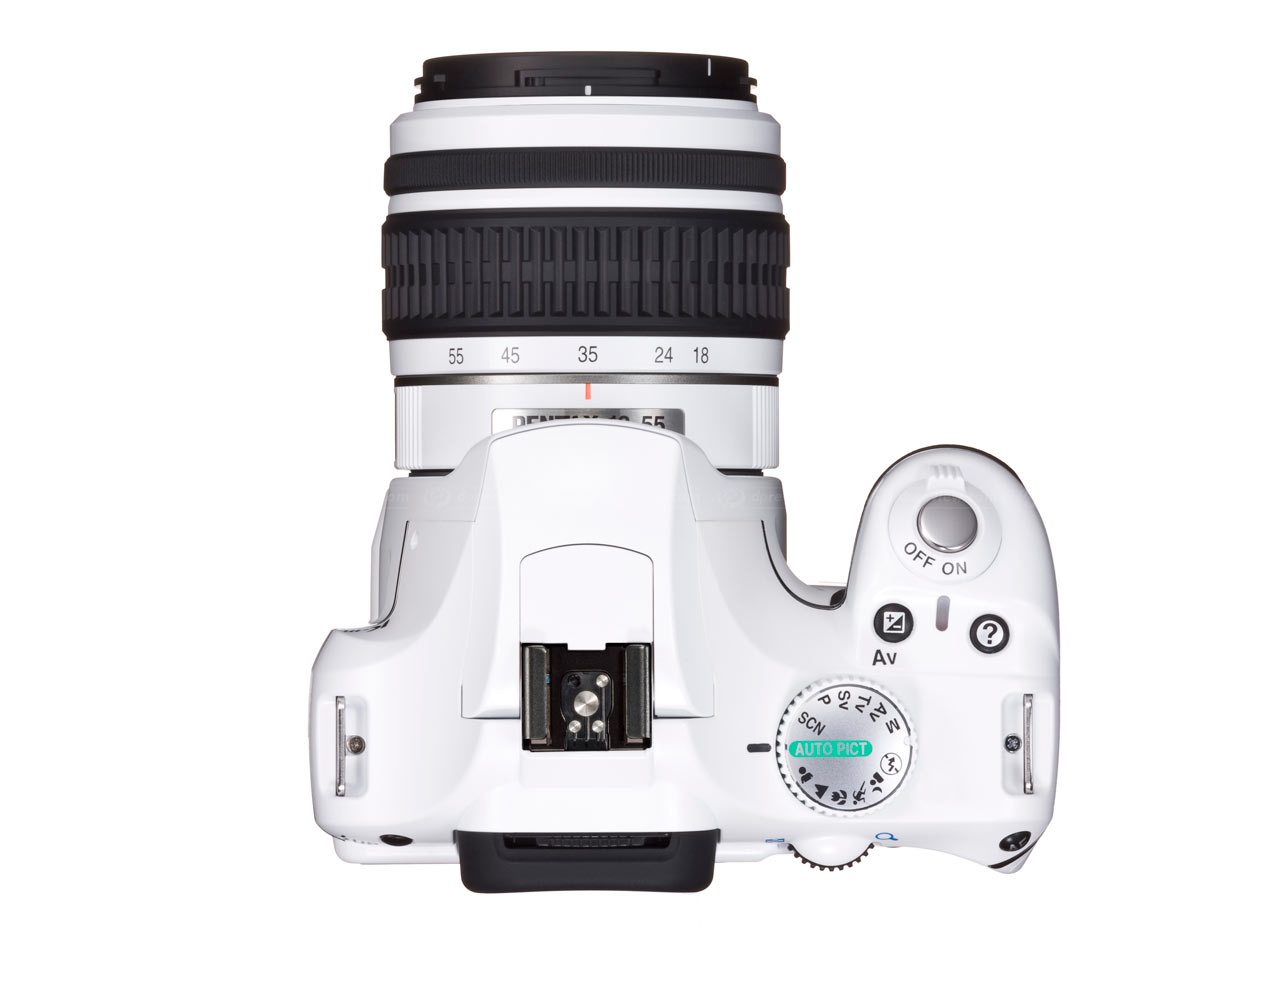 Pentax announces K2000 in white: Digital Photography Review